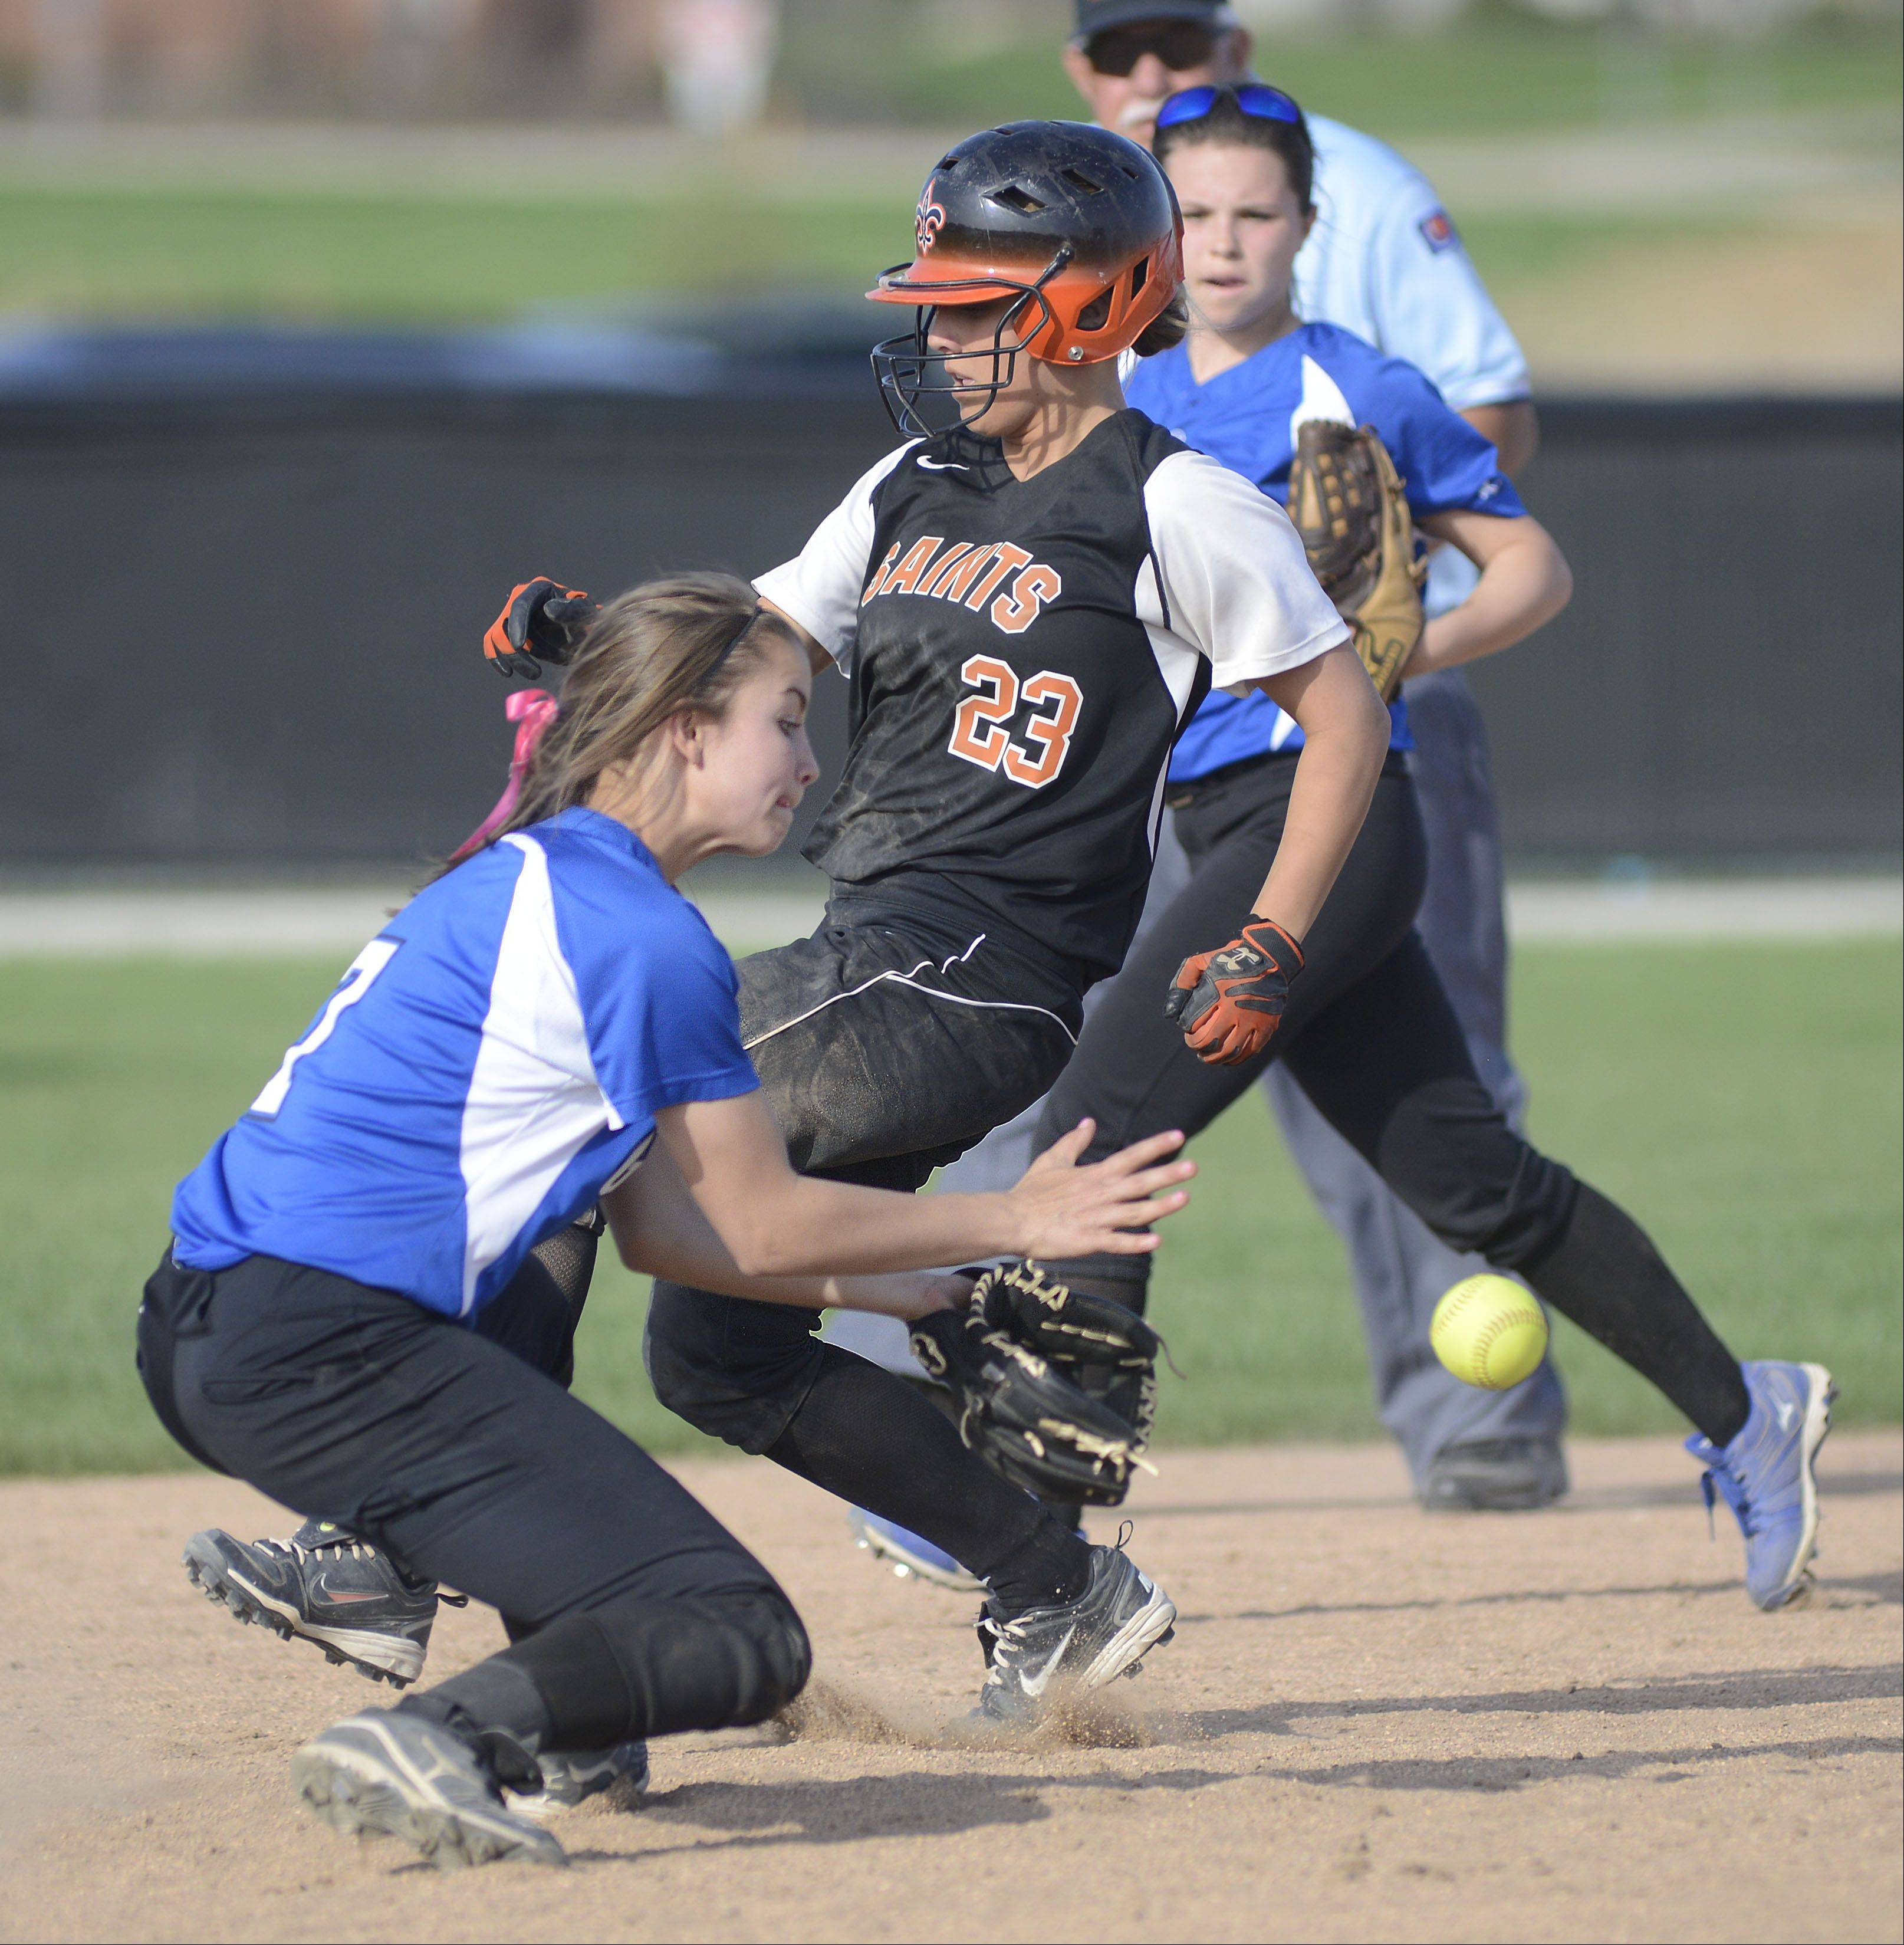 St. Charles East's Mackenzie Meadows beats the ball to Geneva's Anna Geary's glove in the fourth inning on Tuesday, April 30.